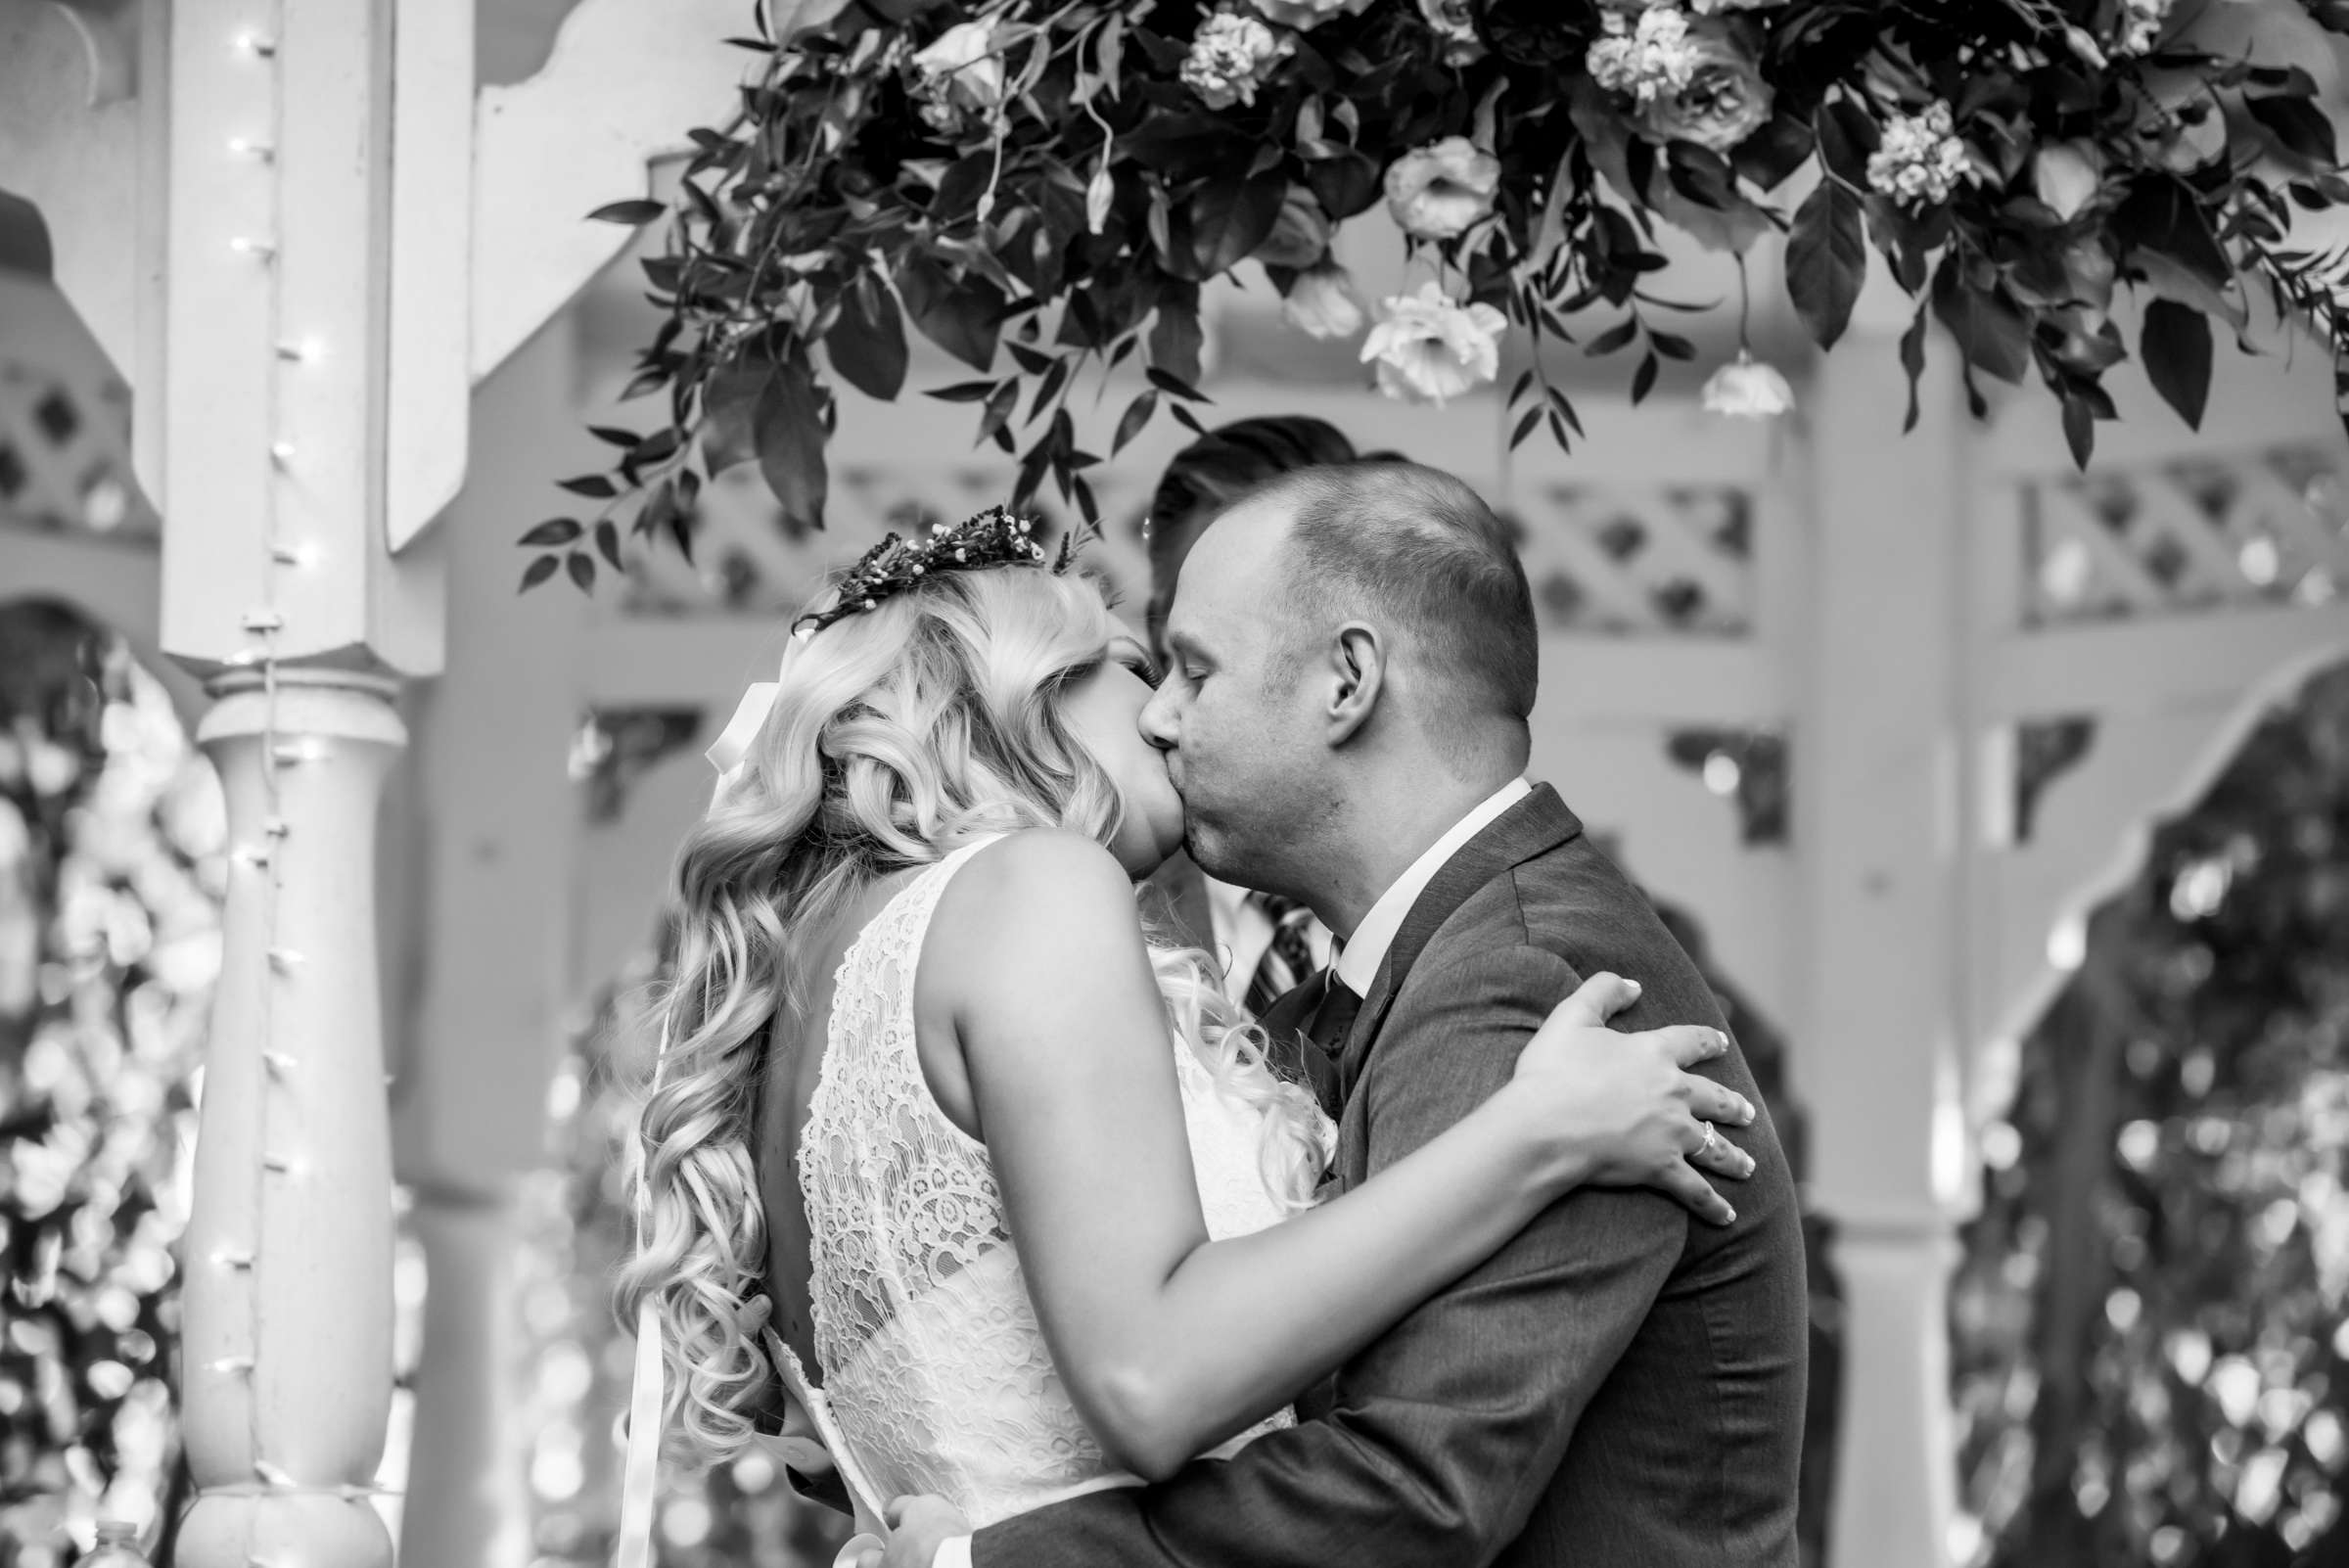 Twin Oaks House & Gardens Wedding Estate Wedding, Brittany and Sean Wedding Photo #94 by True Photography